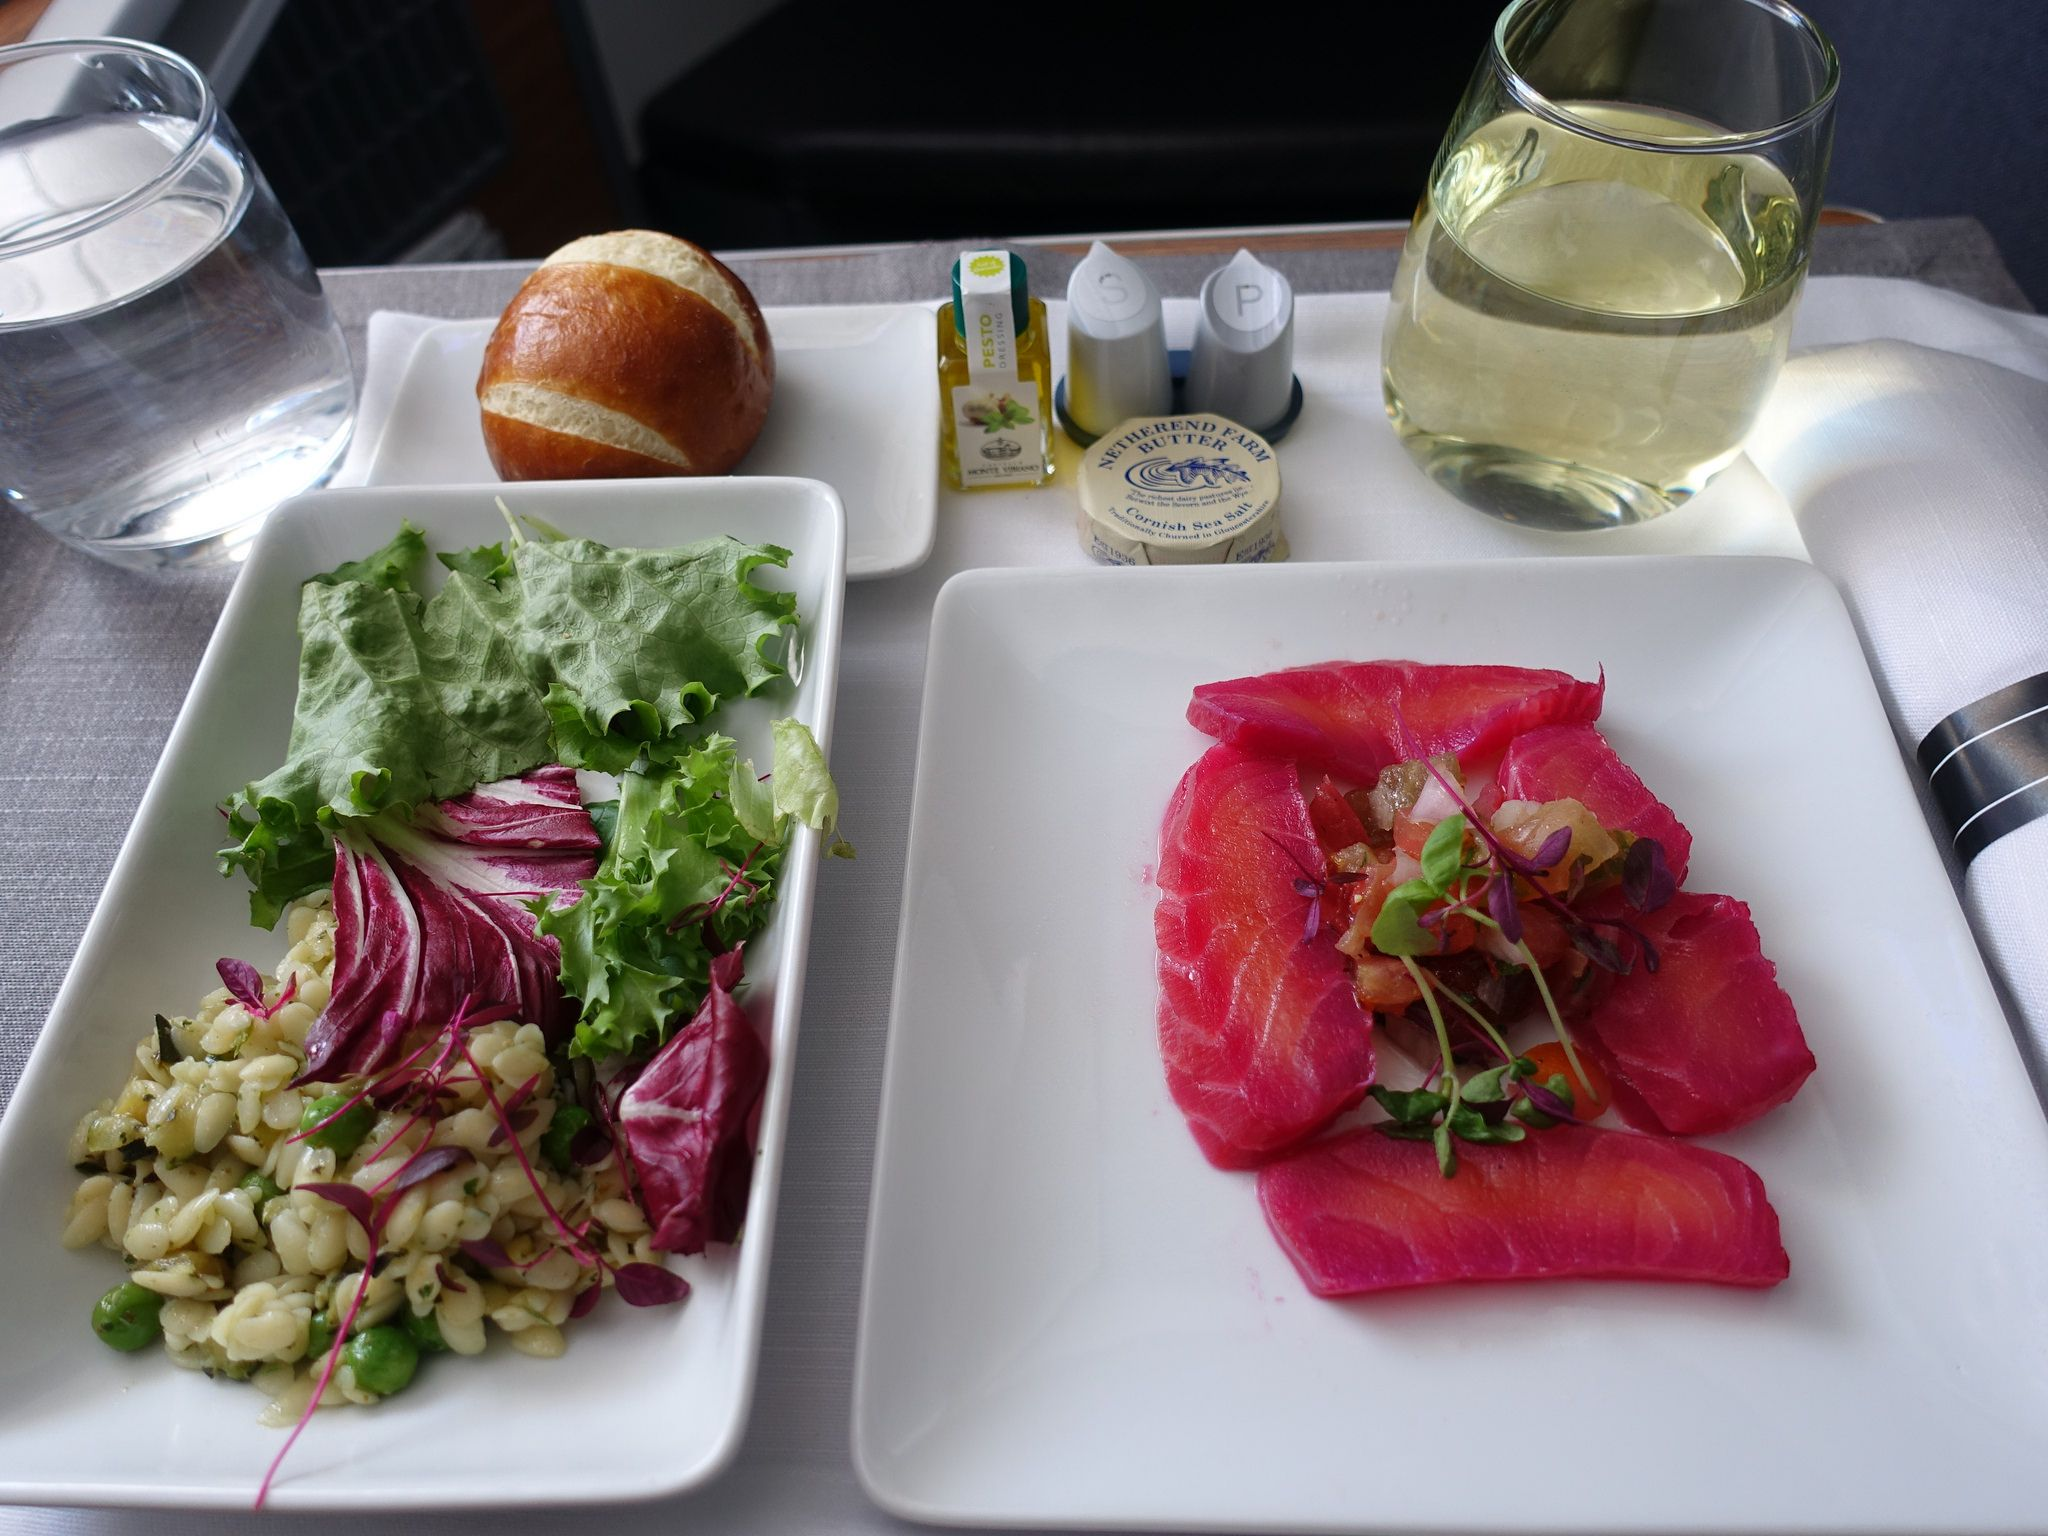 201808067 Aa105 Lhr Jfk Lunch Airline Food Lunch Orzo Salad